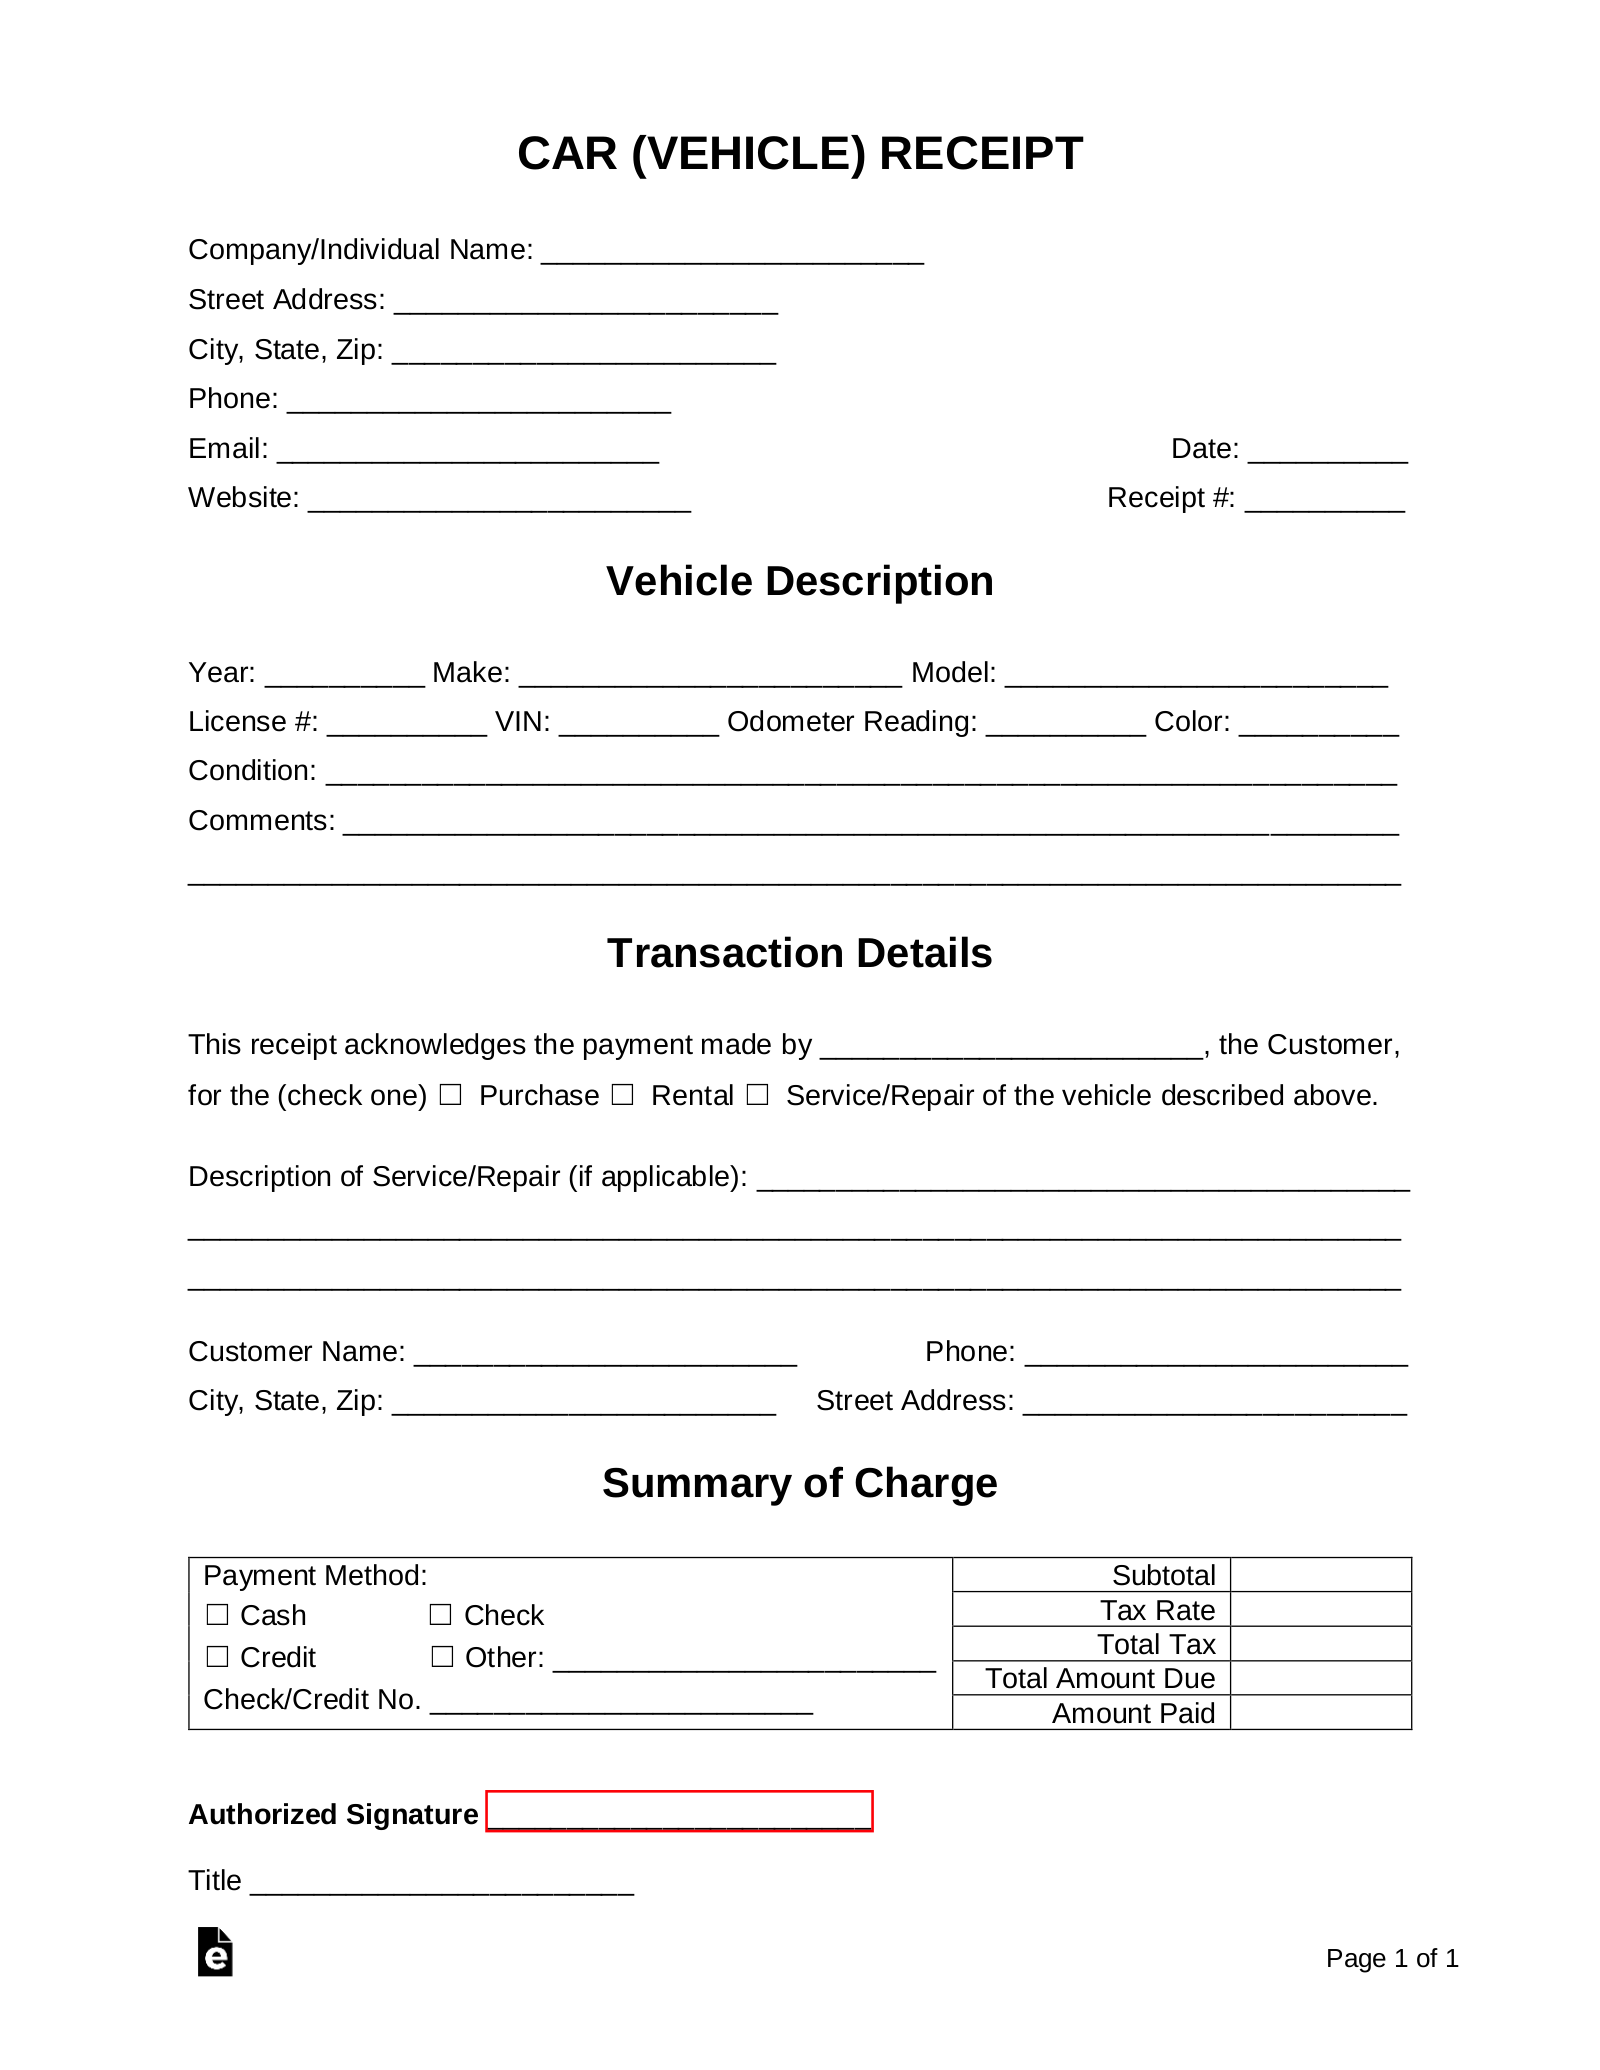 Free Car Vehicle Receipt Template Pdf Word Eforms Free